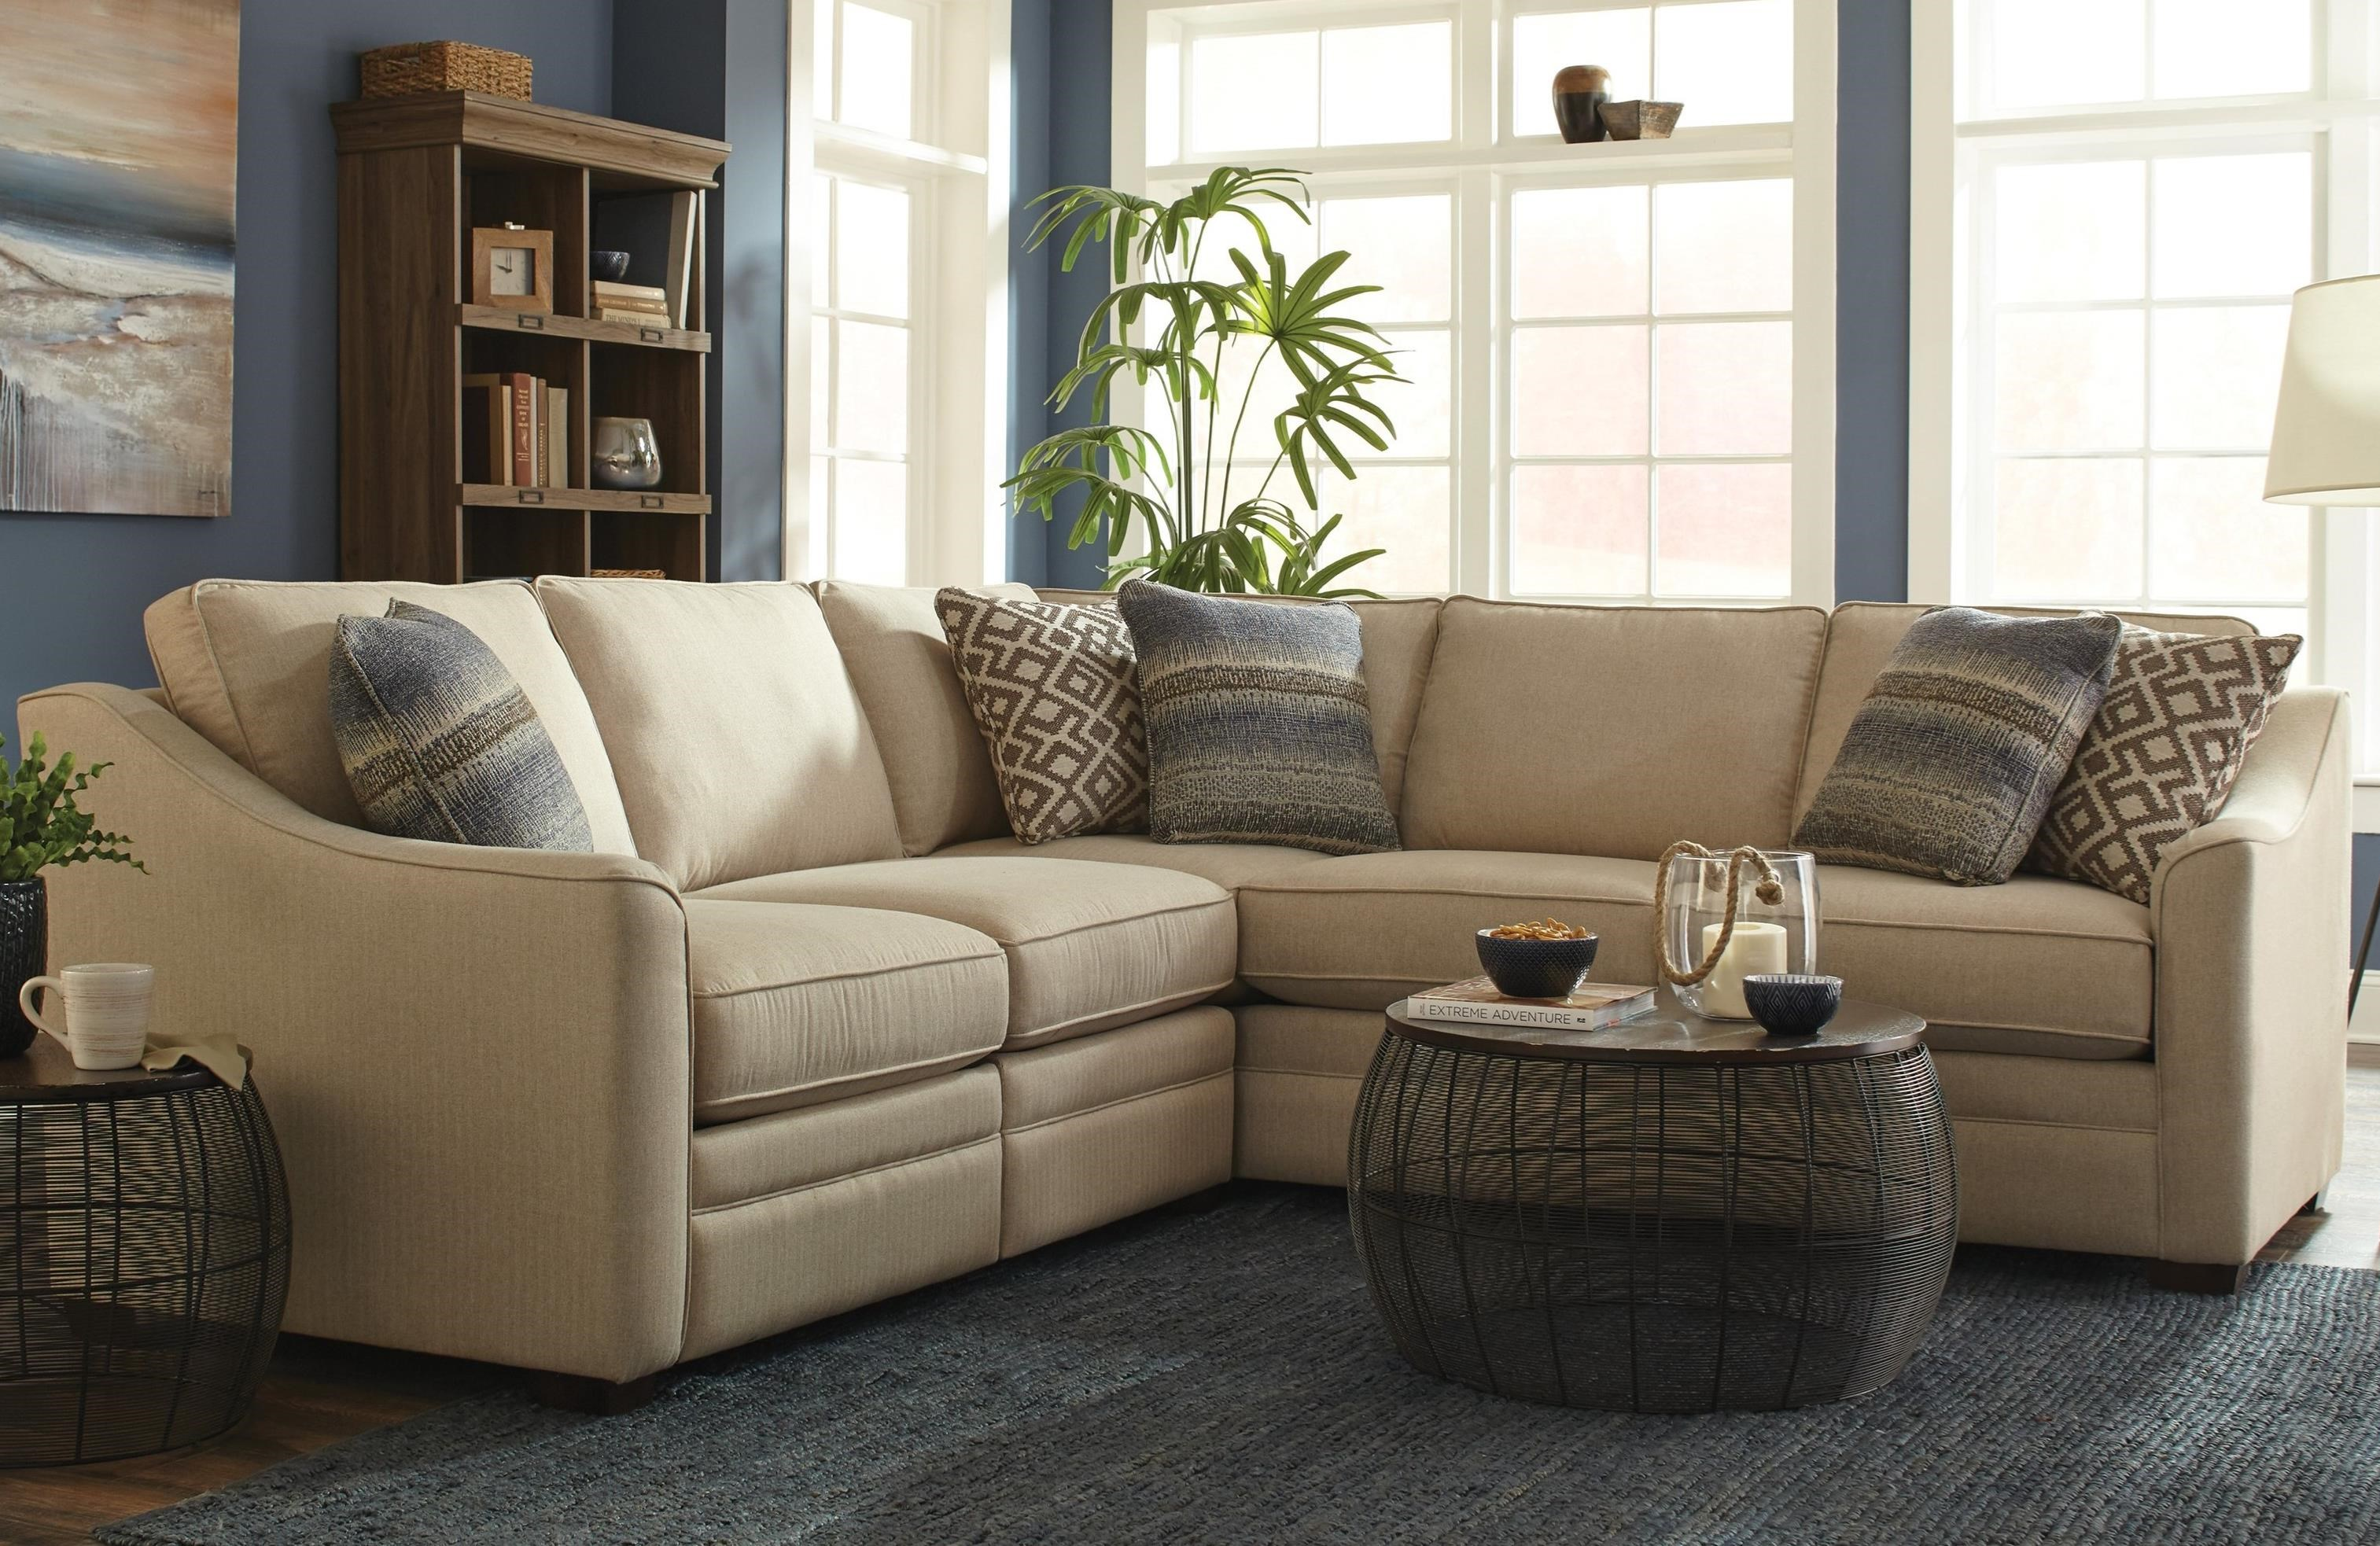 F9 Custom Collection Custom 2 Pc Sectional w/ Recliners by Craftmaster at Esprit Decor Home Furnishings